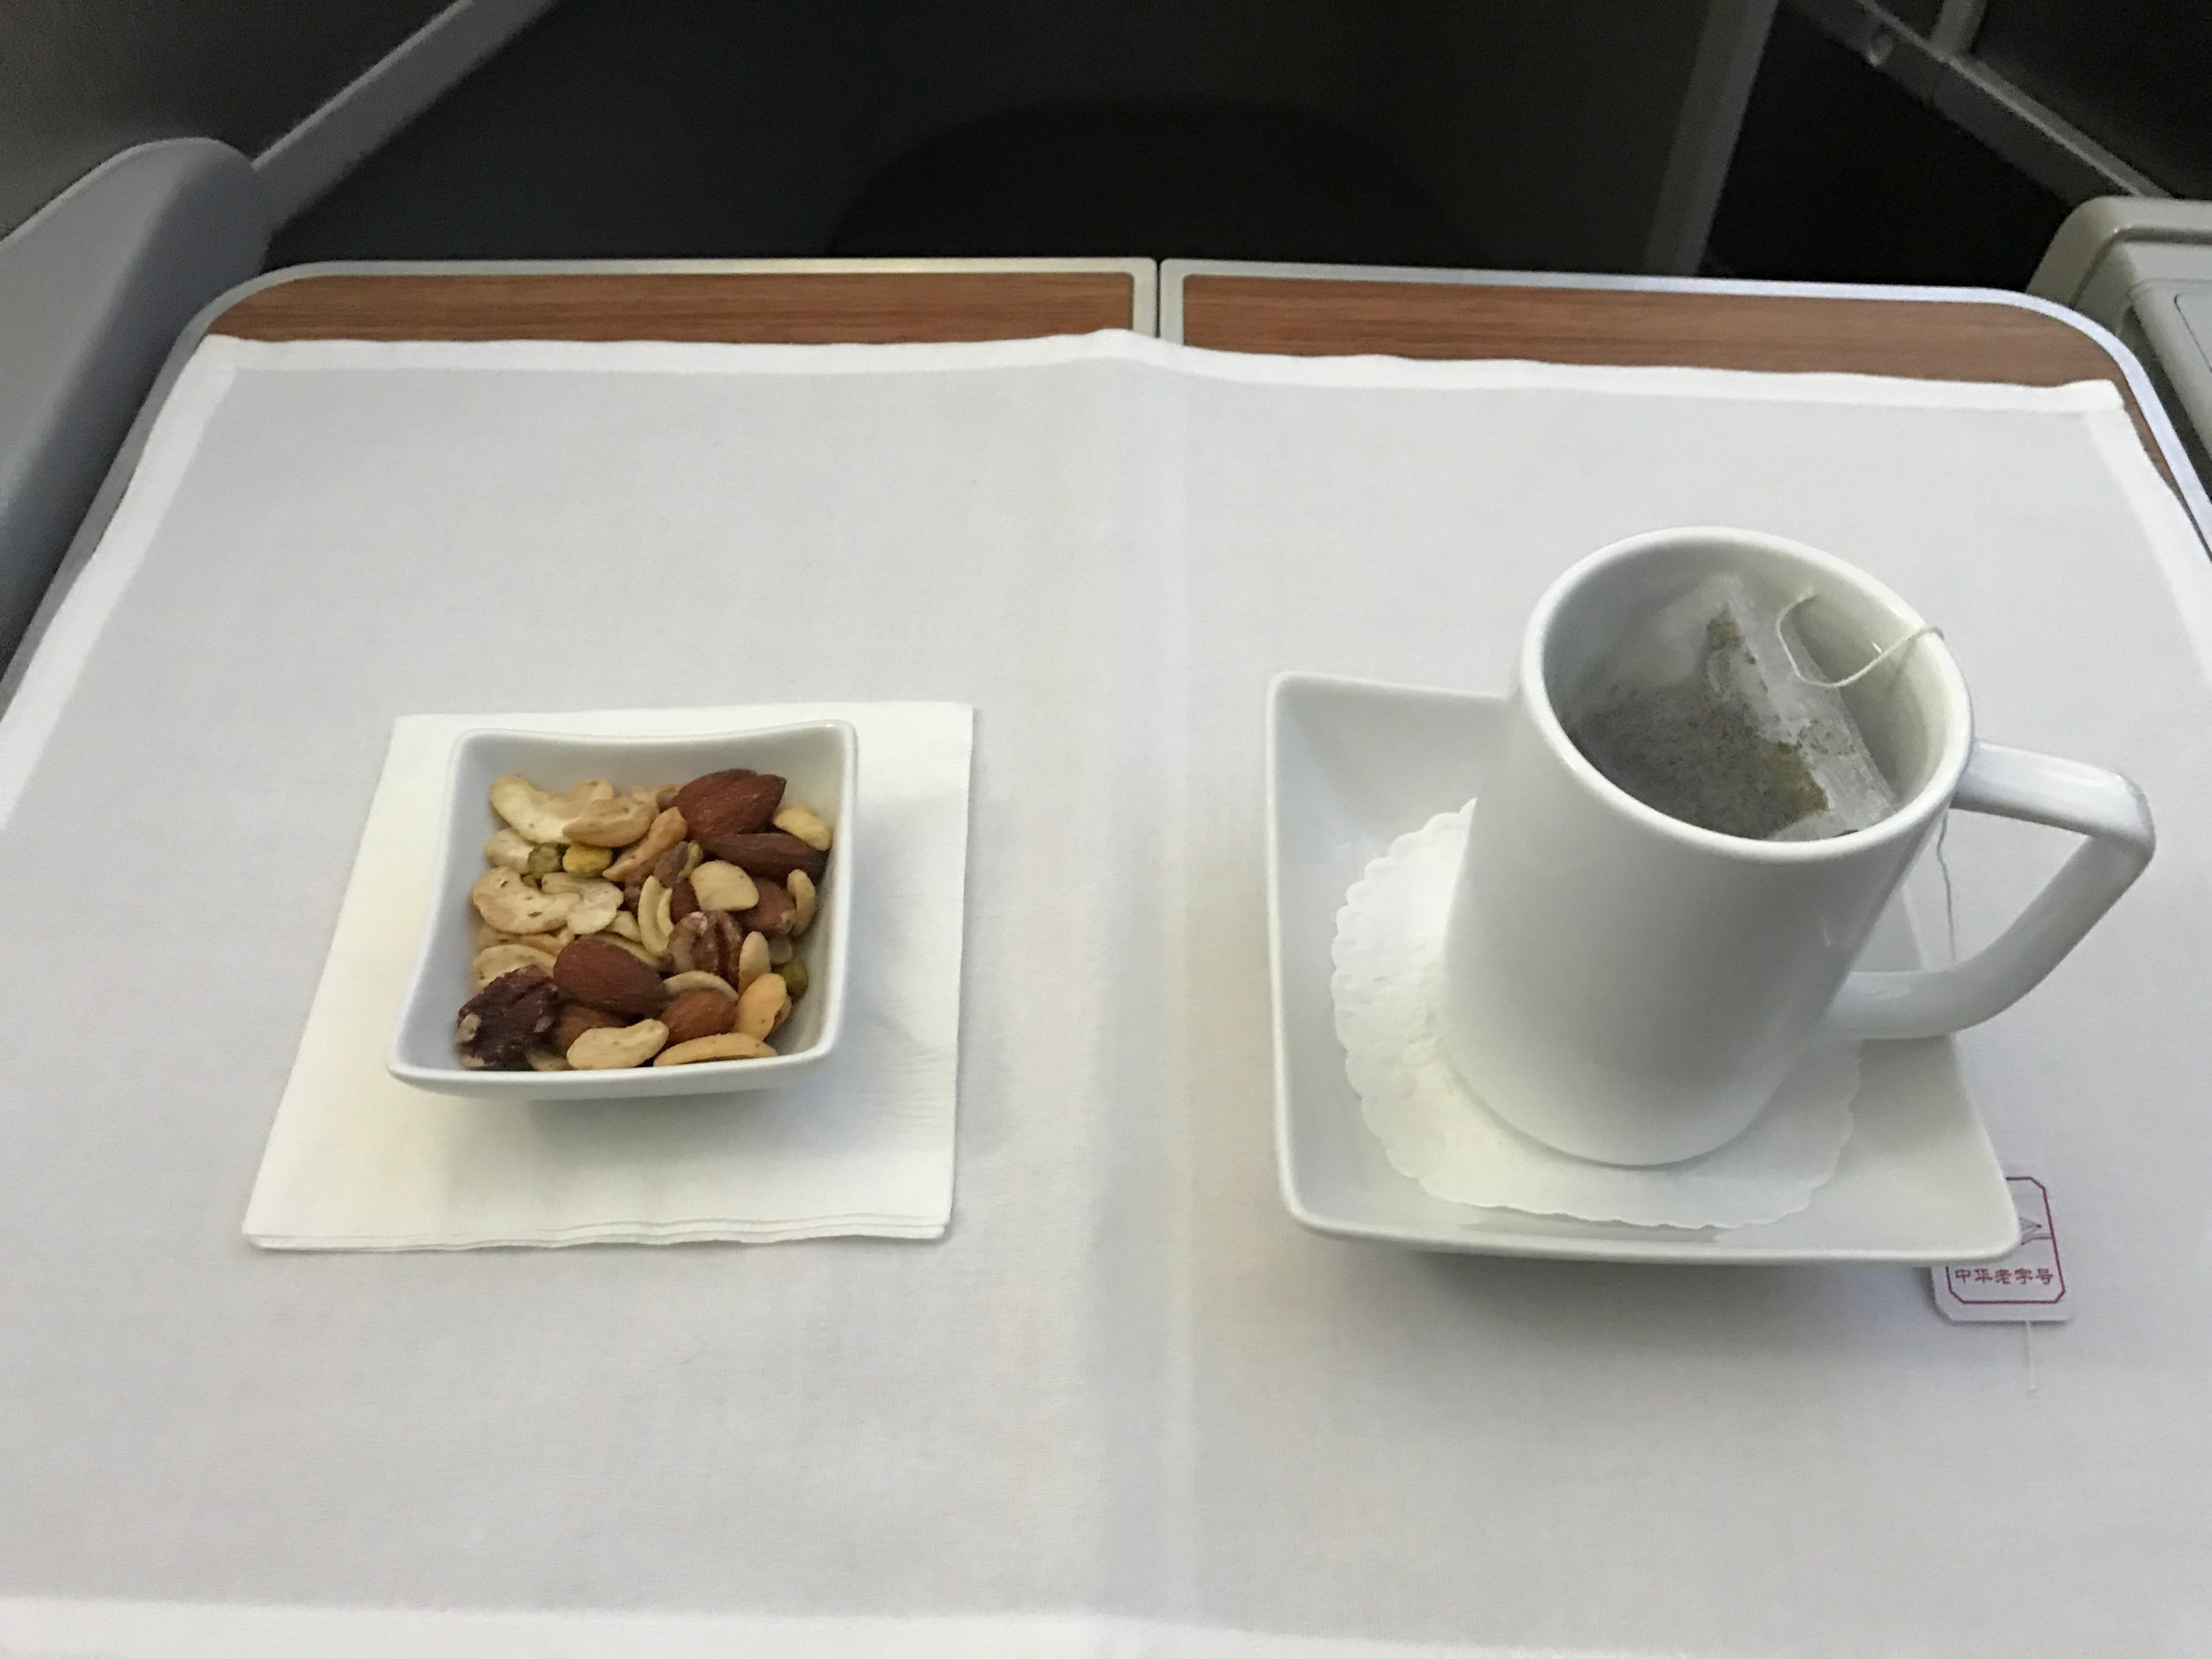 Warm nuts and hot tea - AA Business Class 787